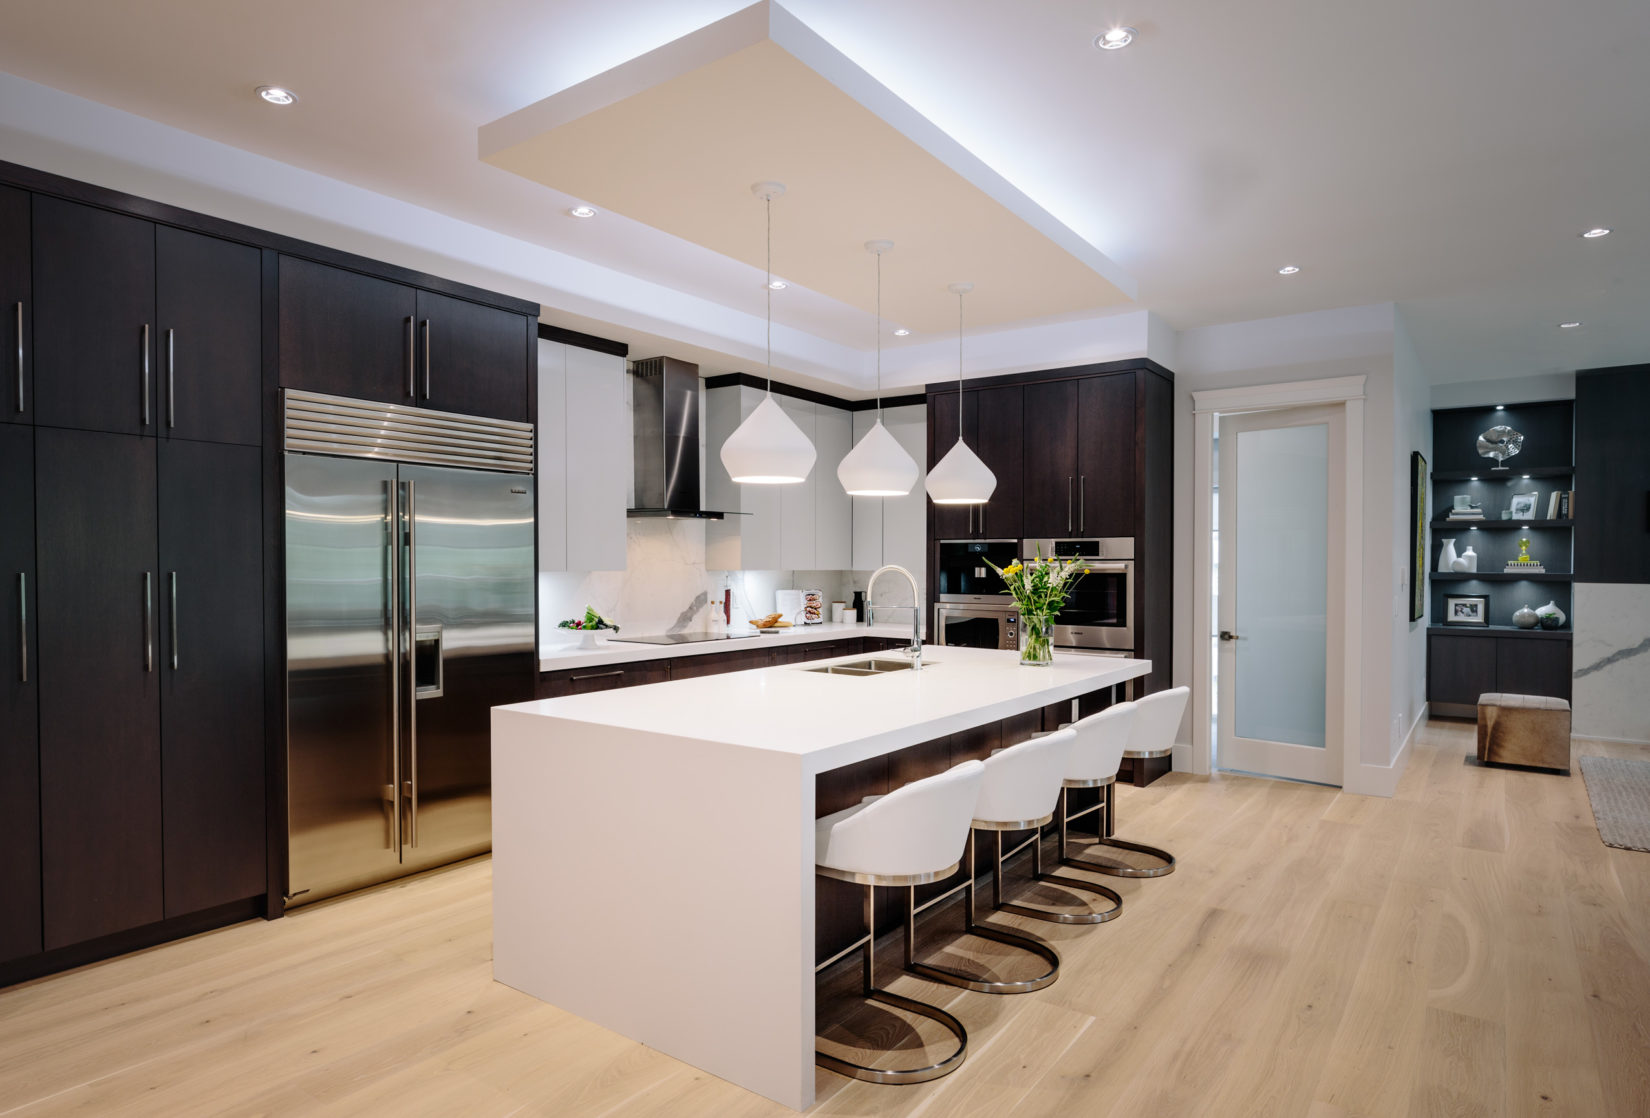 100 kitchen designer vancouver interesting indoor for Kitchen ideas vancouver